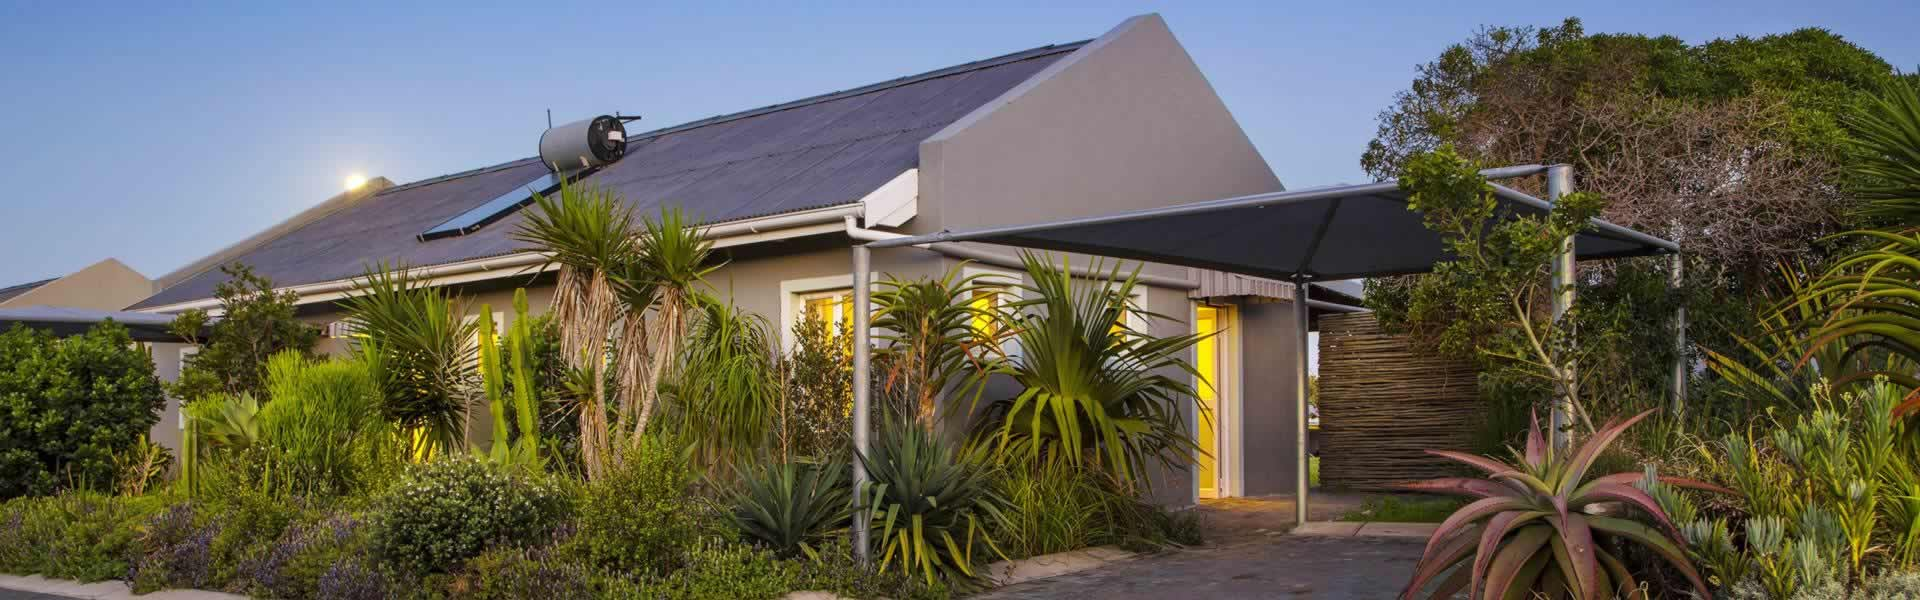 Accommodation Unit at Cannon Rocks Beach Suite